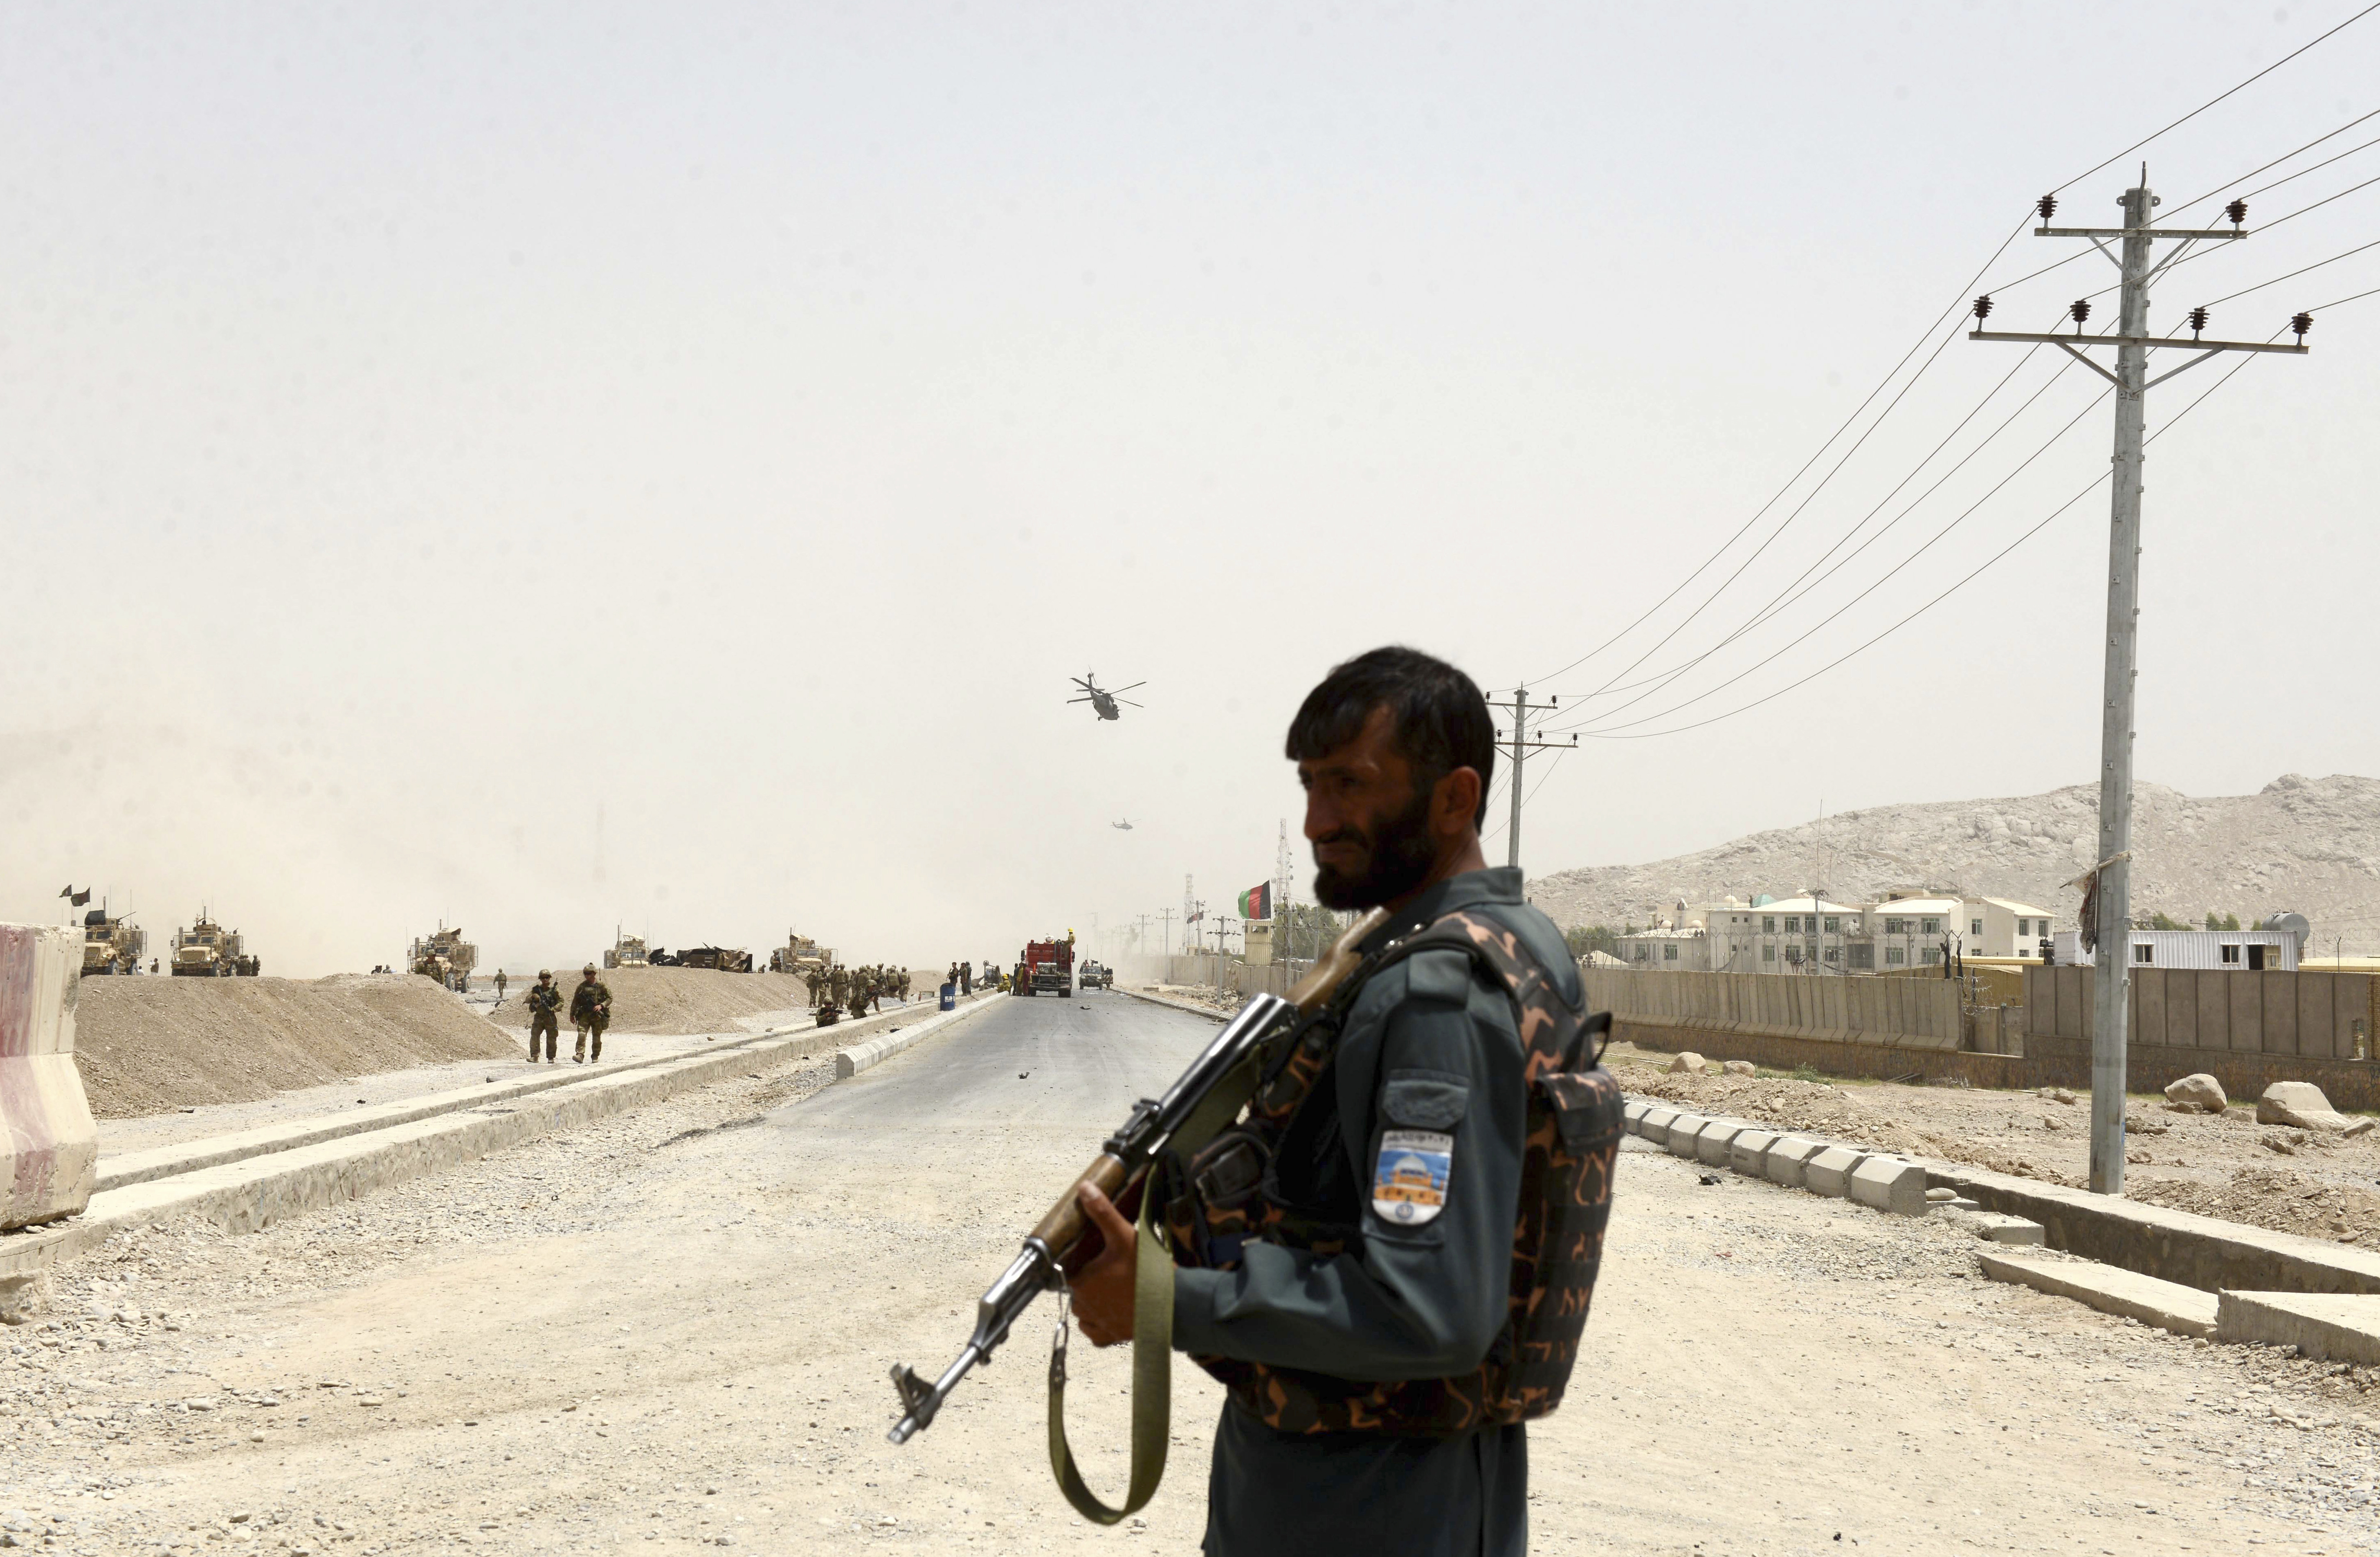 US: 4 wounded in Afghan attack that killed 2 US troops